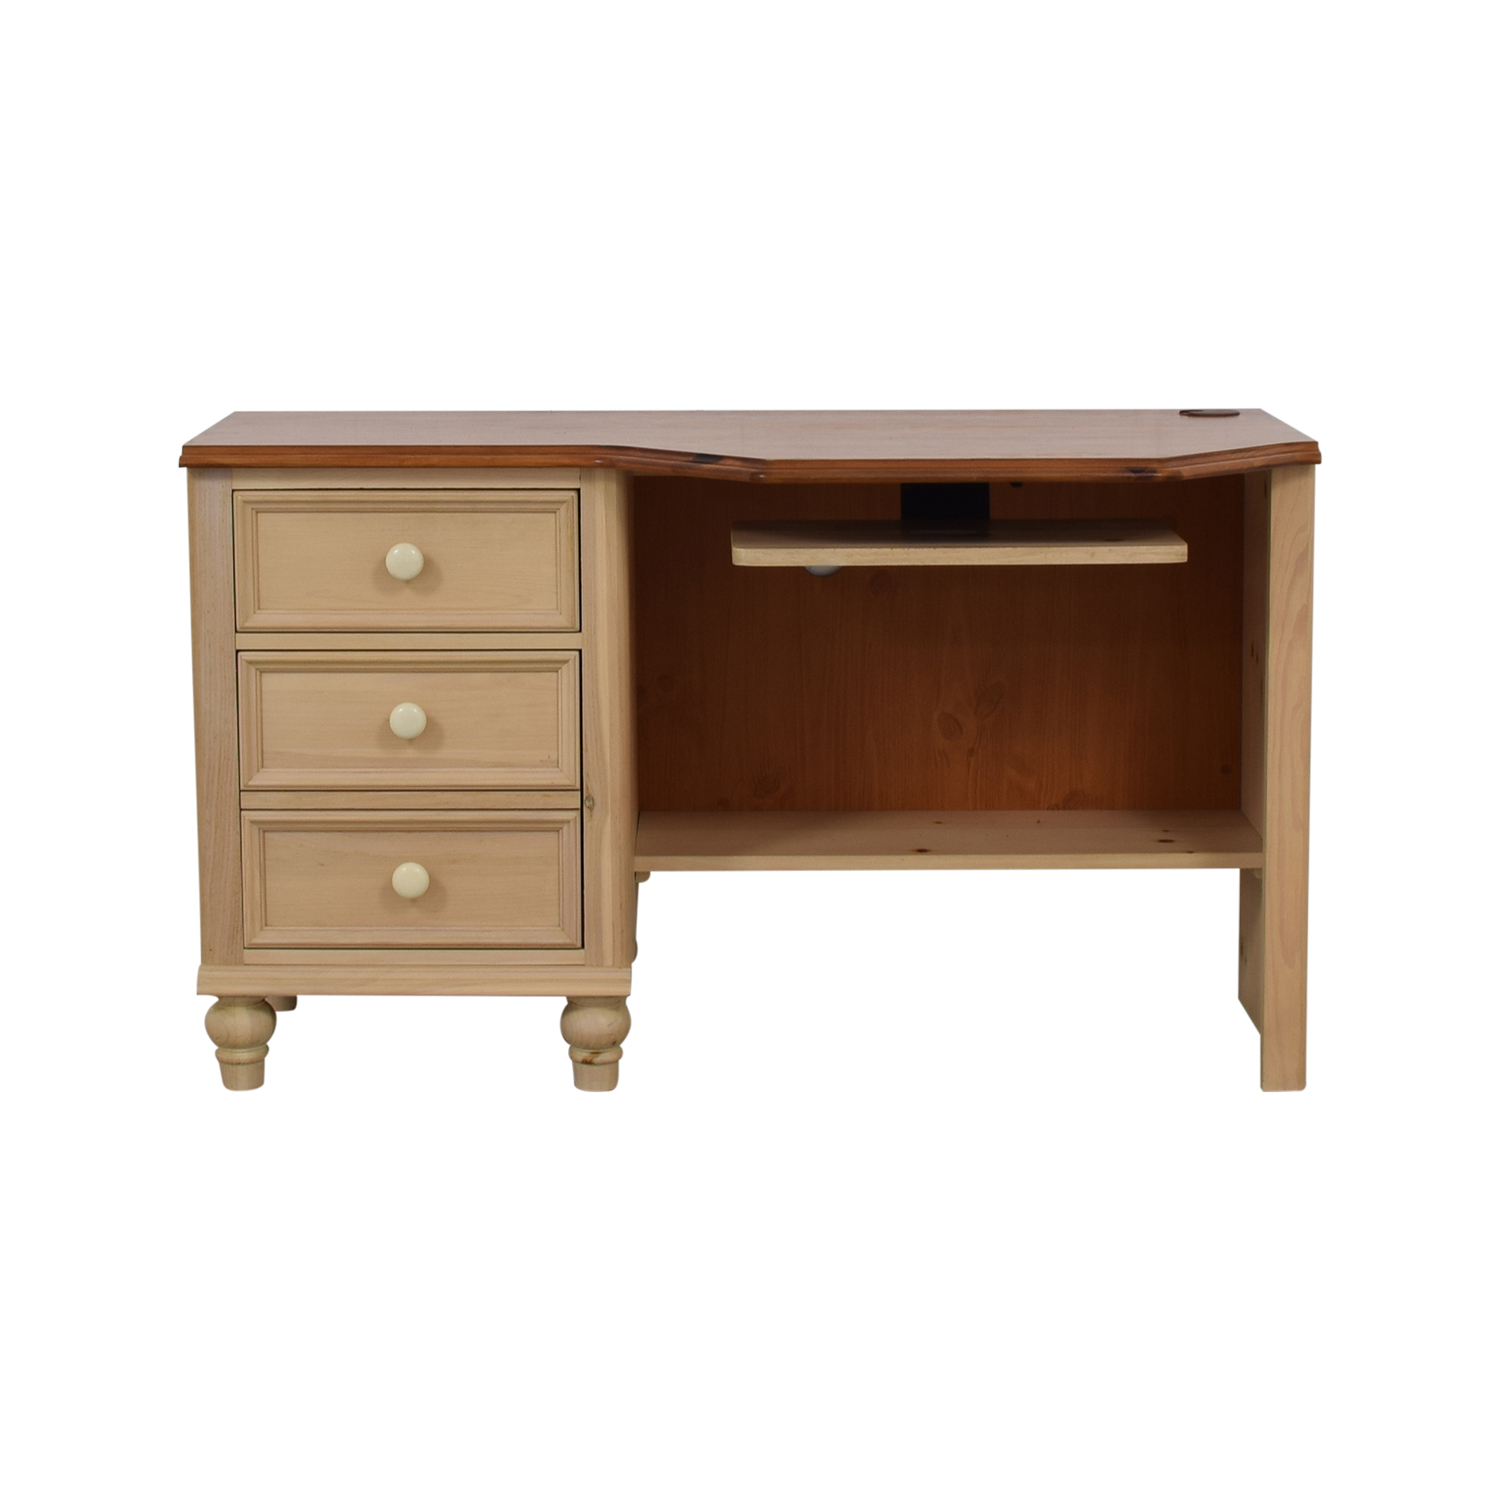 86 off broyhill furniture broyhill two drawer computer desk with rh kaiyo com